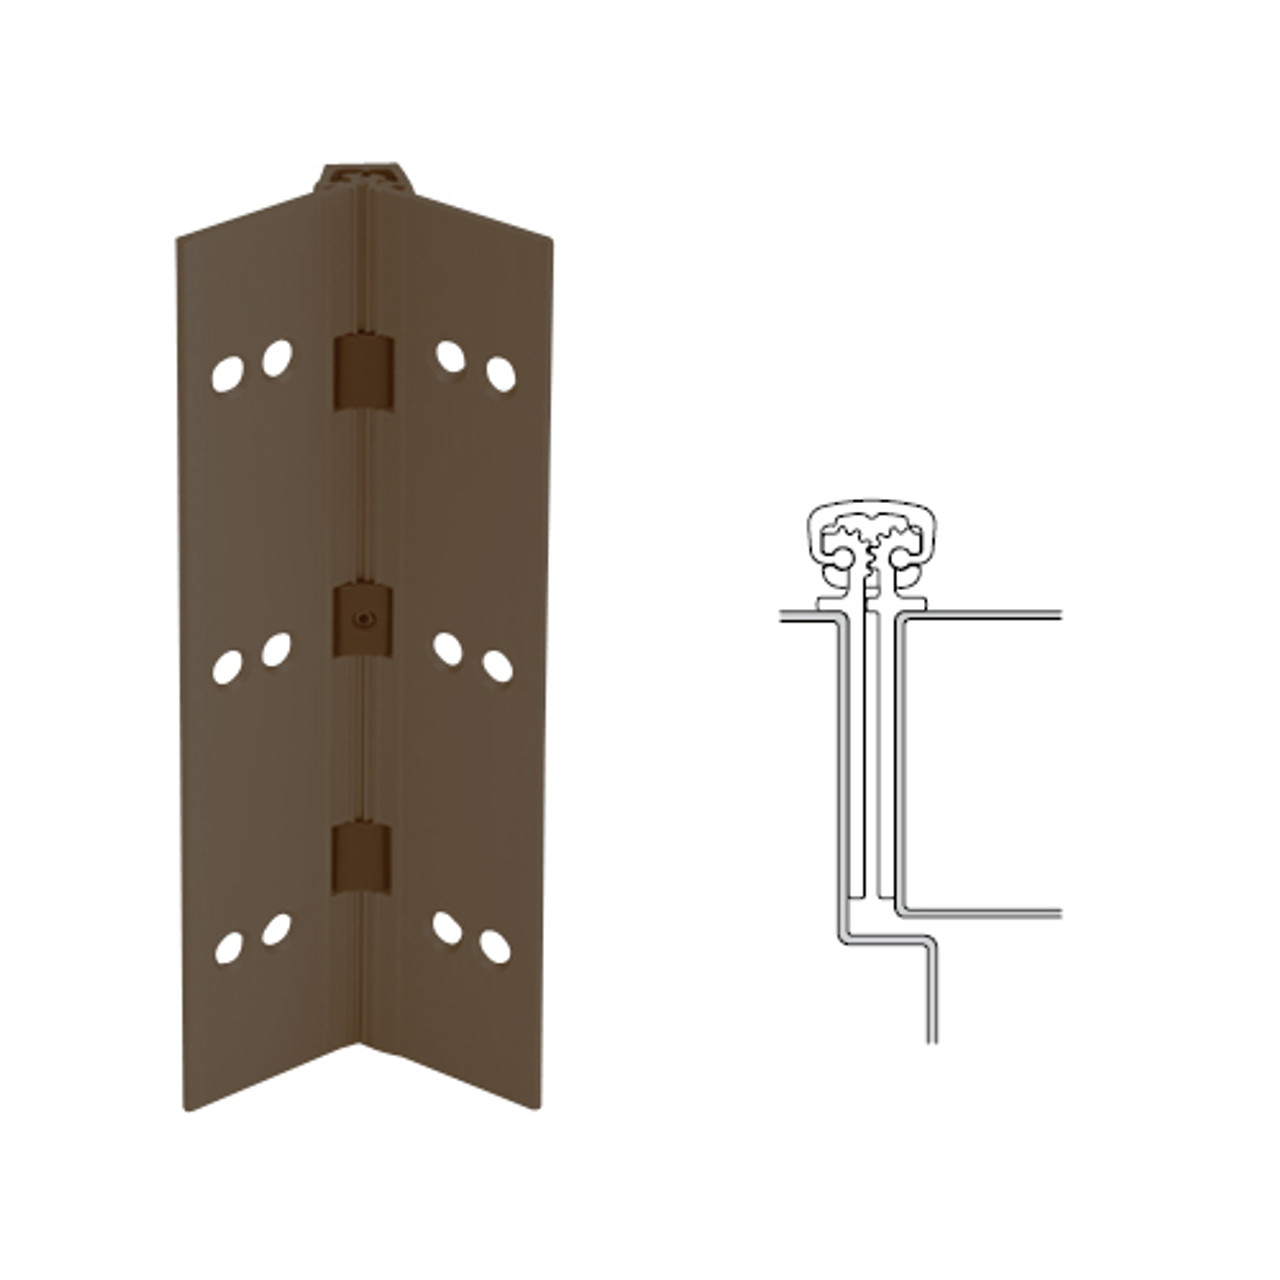 027XY-313AN-83-TEKWD IVES Full Mortise Continuous Geared Hinges with Wood Screws in Dark Bronze Anodized